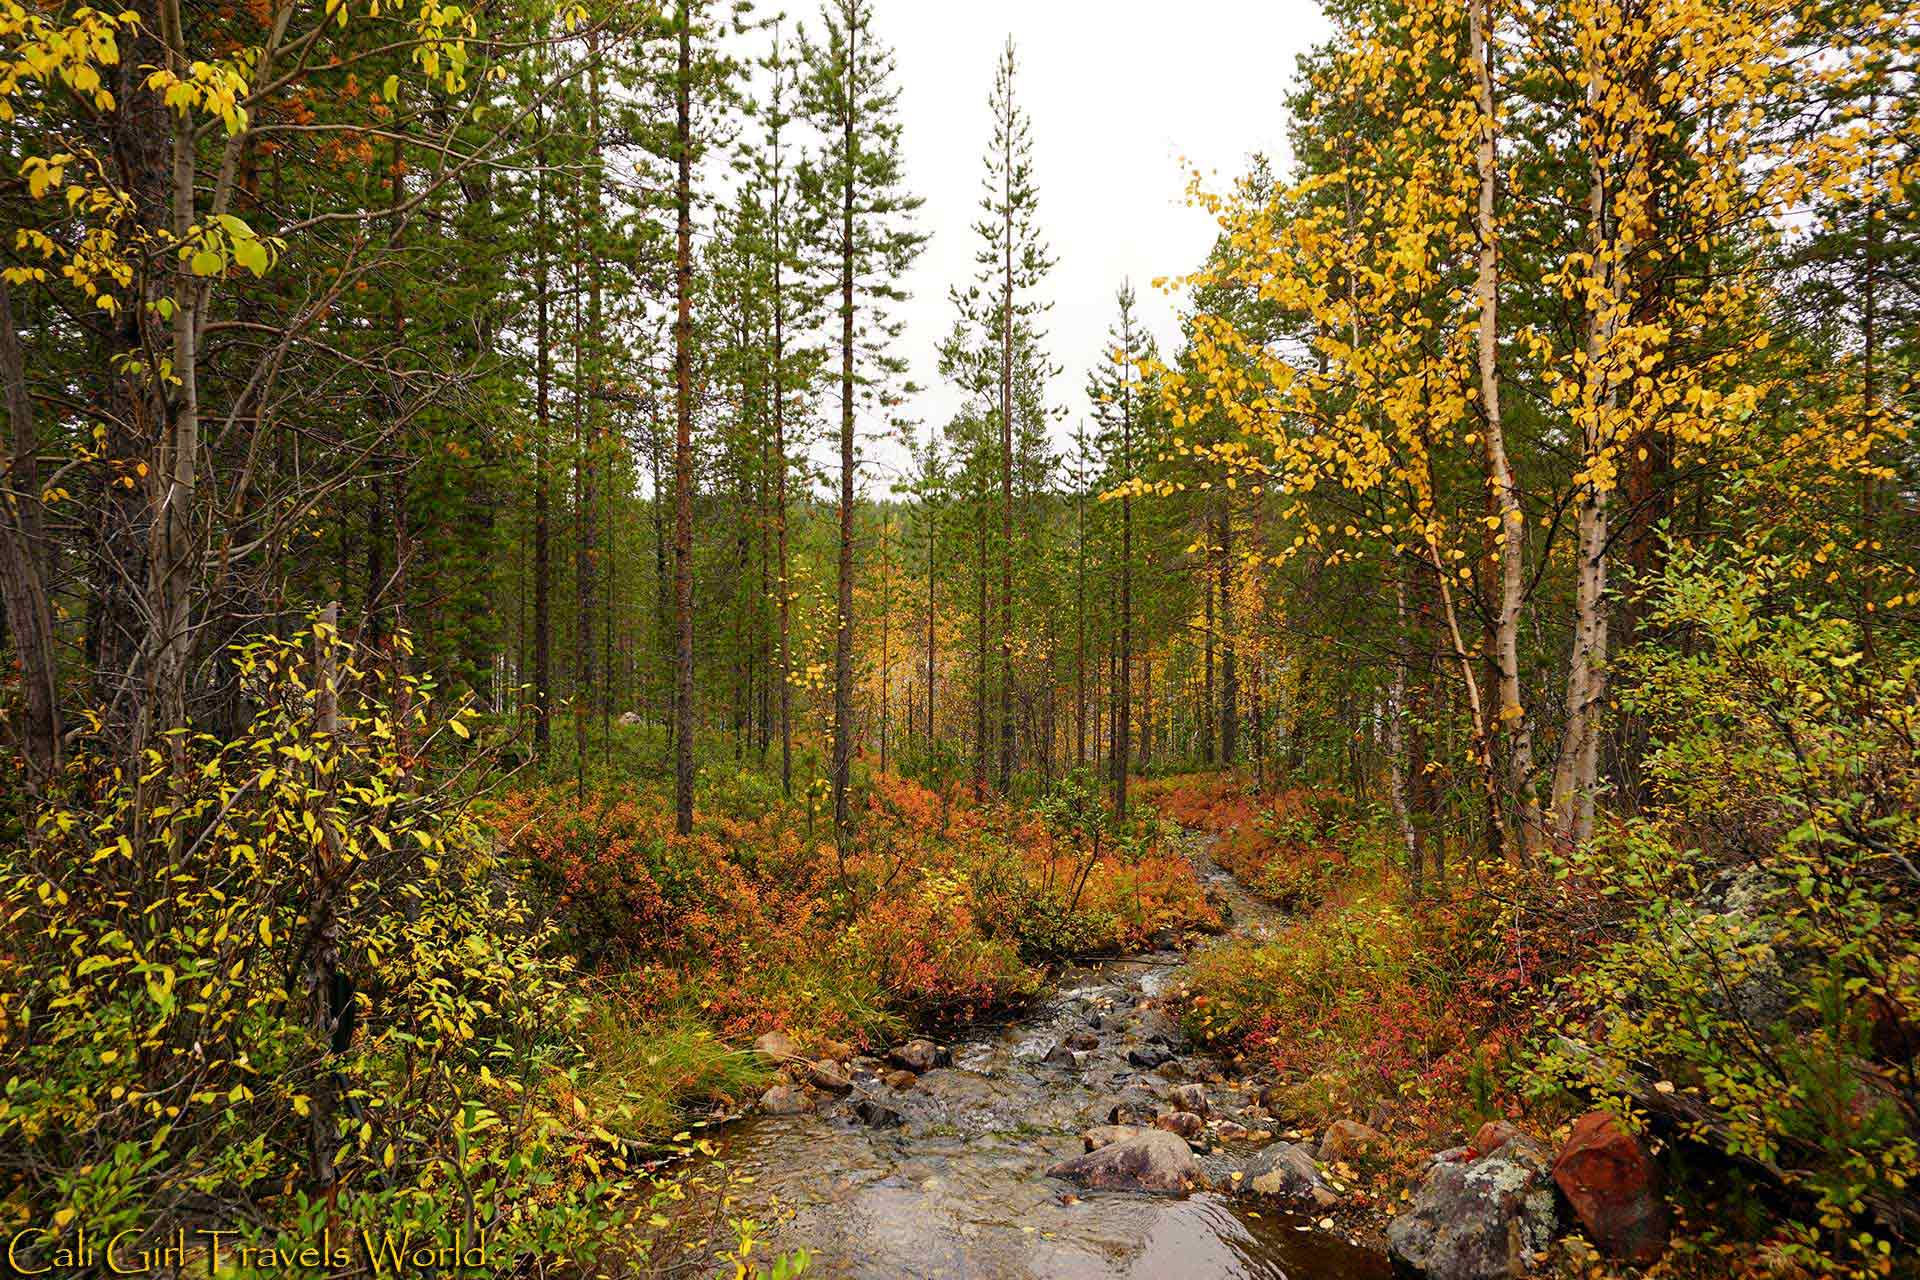 Stream coming off from a lake in Inari, Finland surrounded by ruska colors of yellow and red.